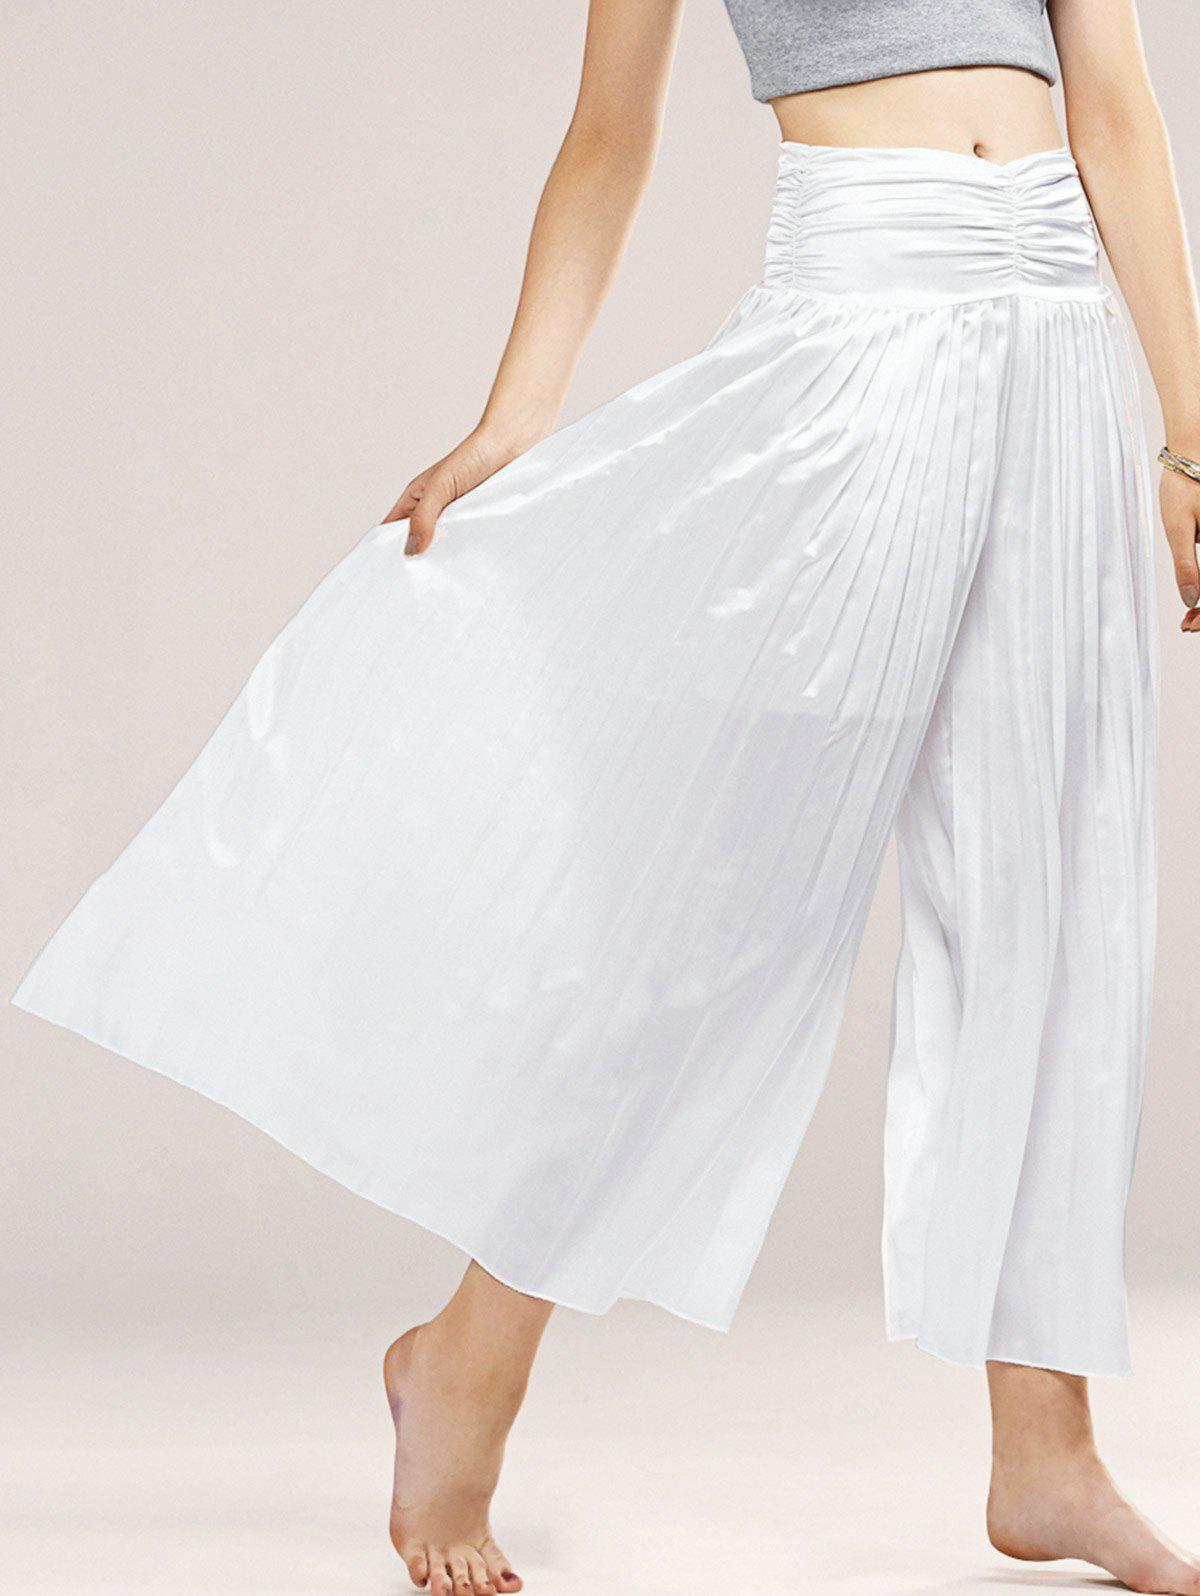 Refreshing Women's Elastic Waist Palazzo Pants - WHITE ONE SIZE(FIT SIZE XS TO M)